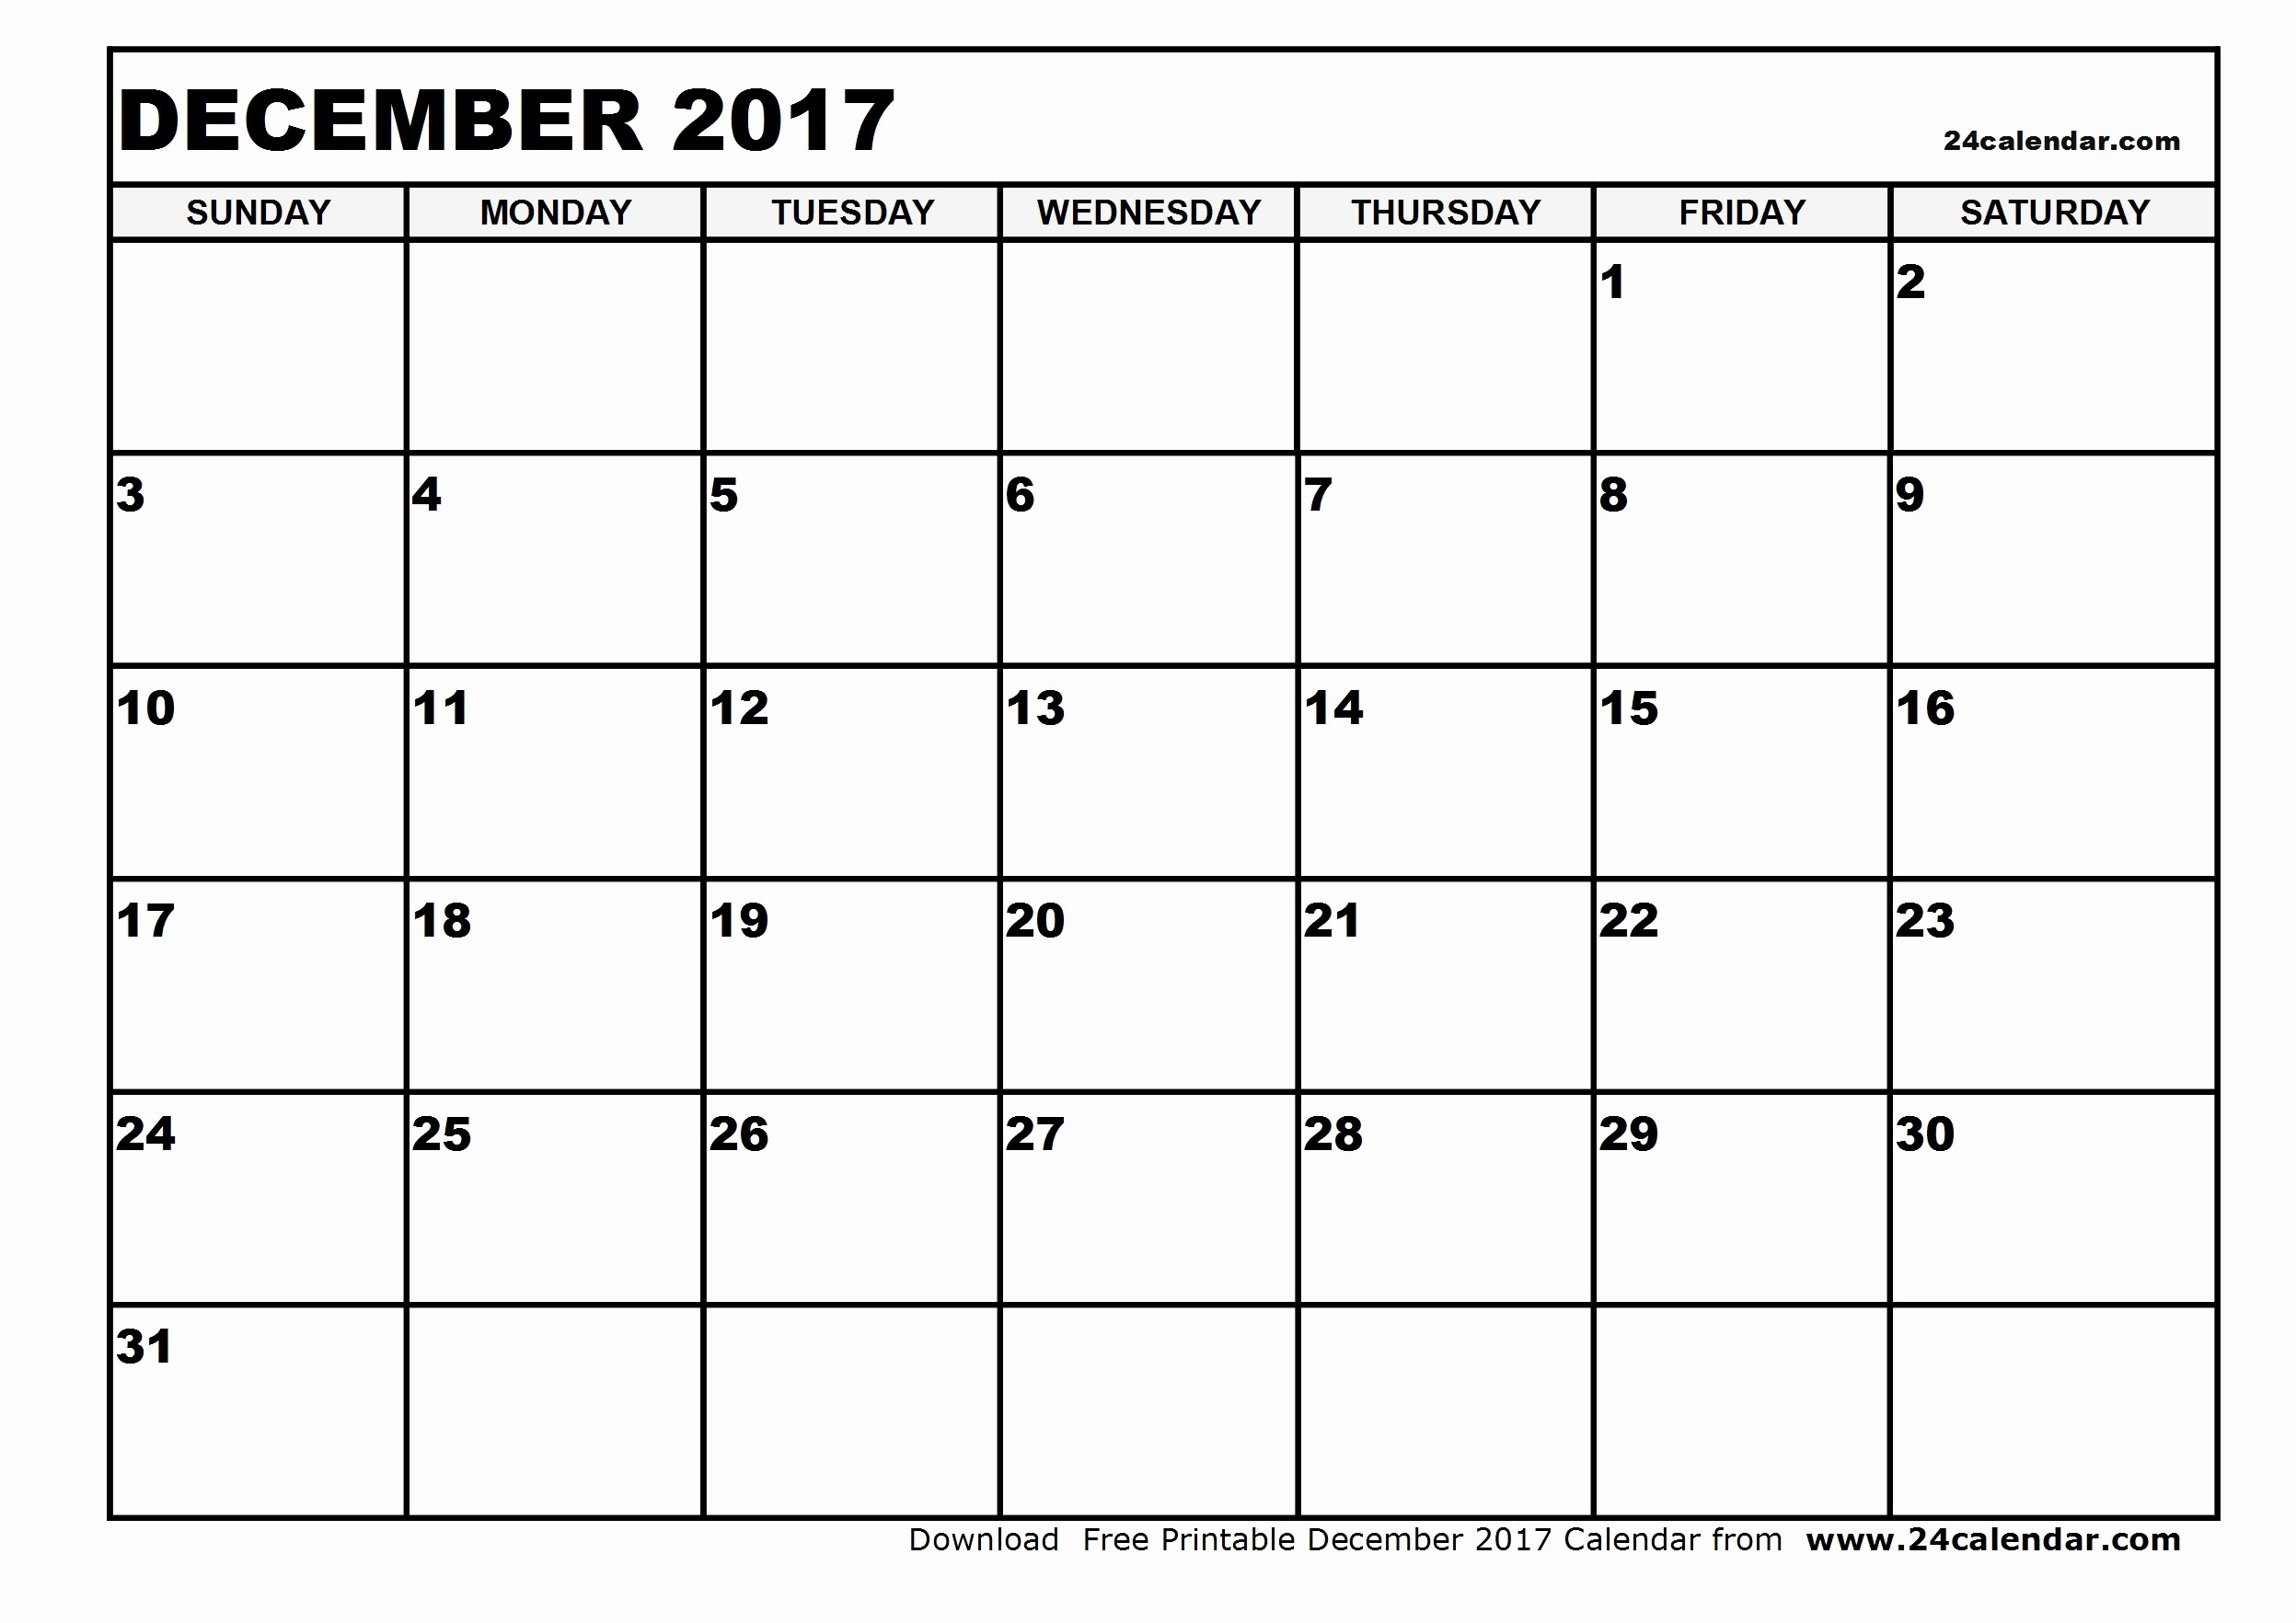 2017 Calendar Template with Notes Awesome December 2017 Calendar Printable with Notes